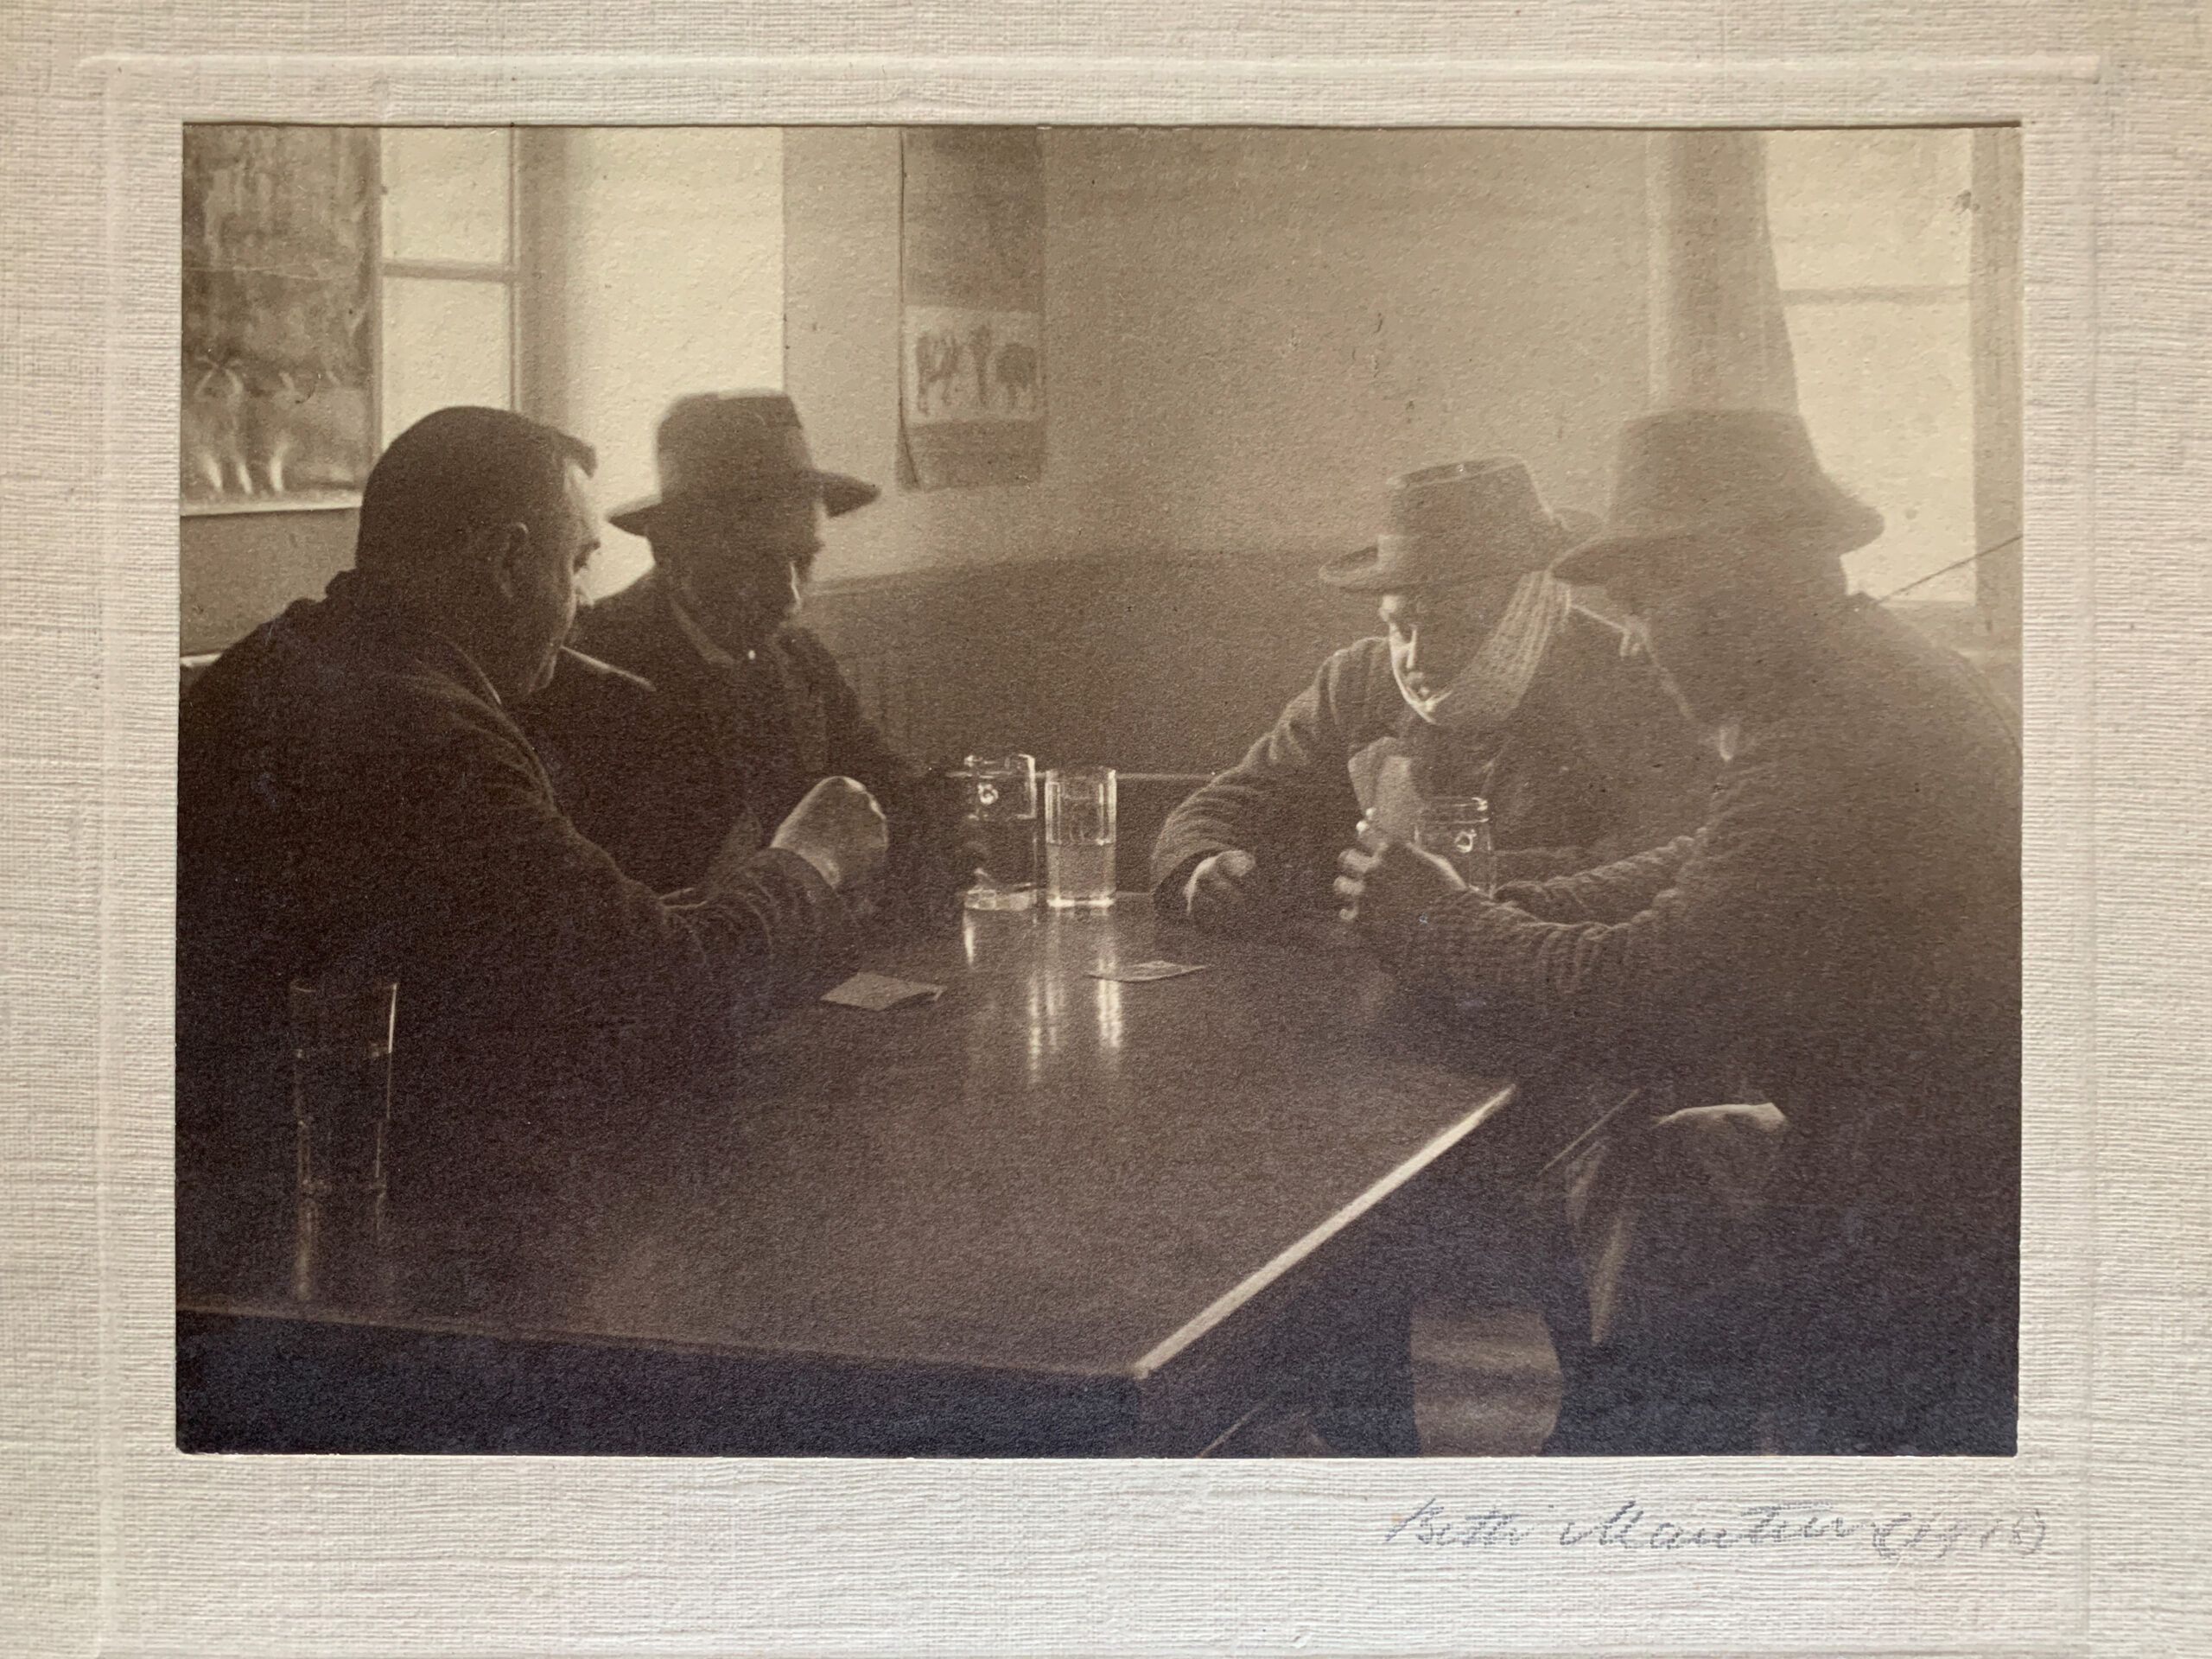 The Card Players, 1918 by Betti Mautner © James Hyman. Men are seen playing cards at a table